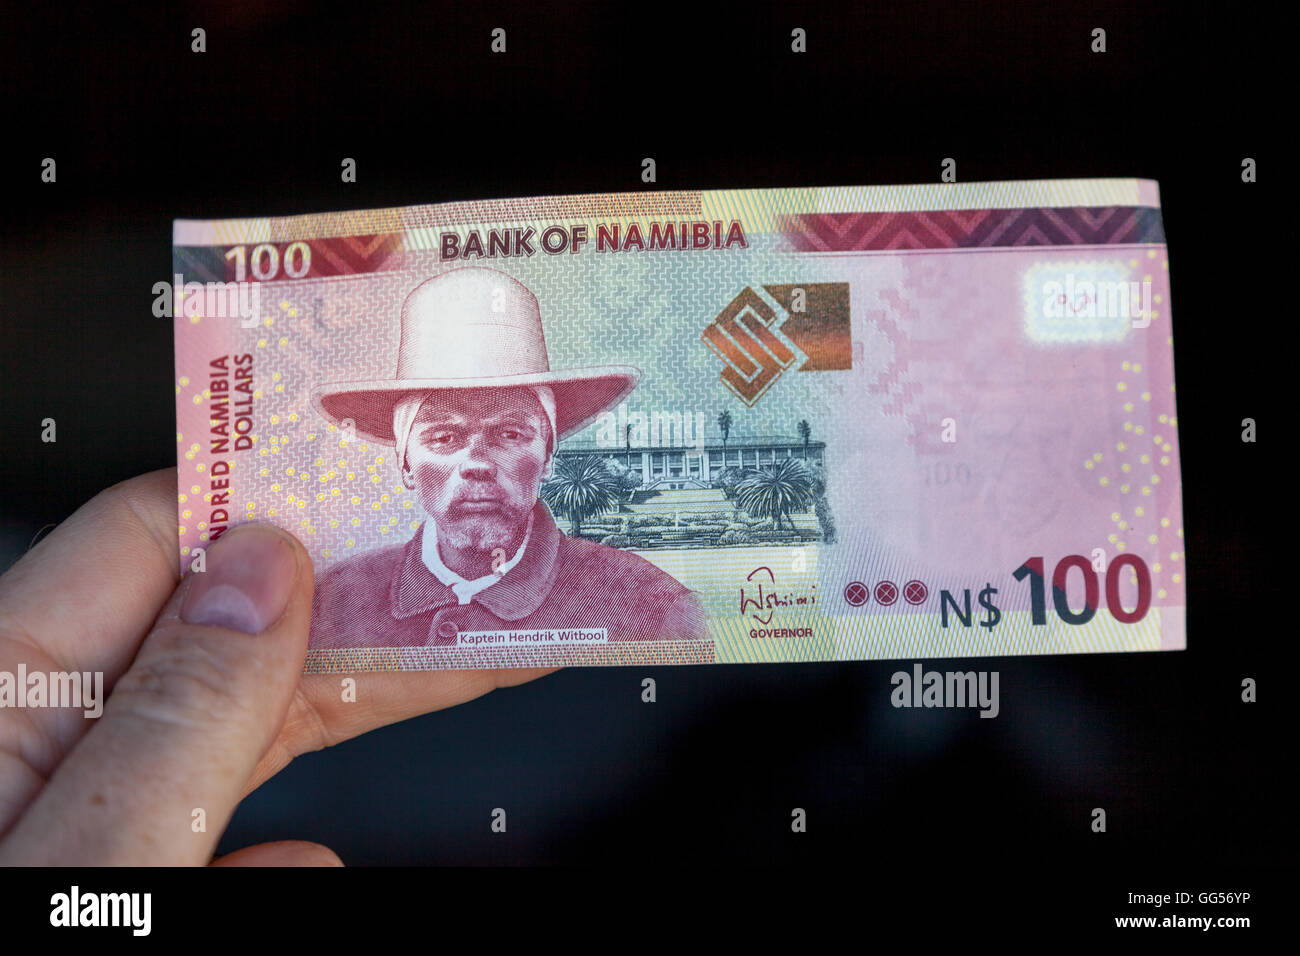 Namibia Namibian dollar currency. N$100 depicting Kaptein Hendrik Witbooi, a chief of the ǀKhowesin people who took - Stock Image